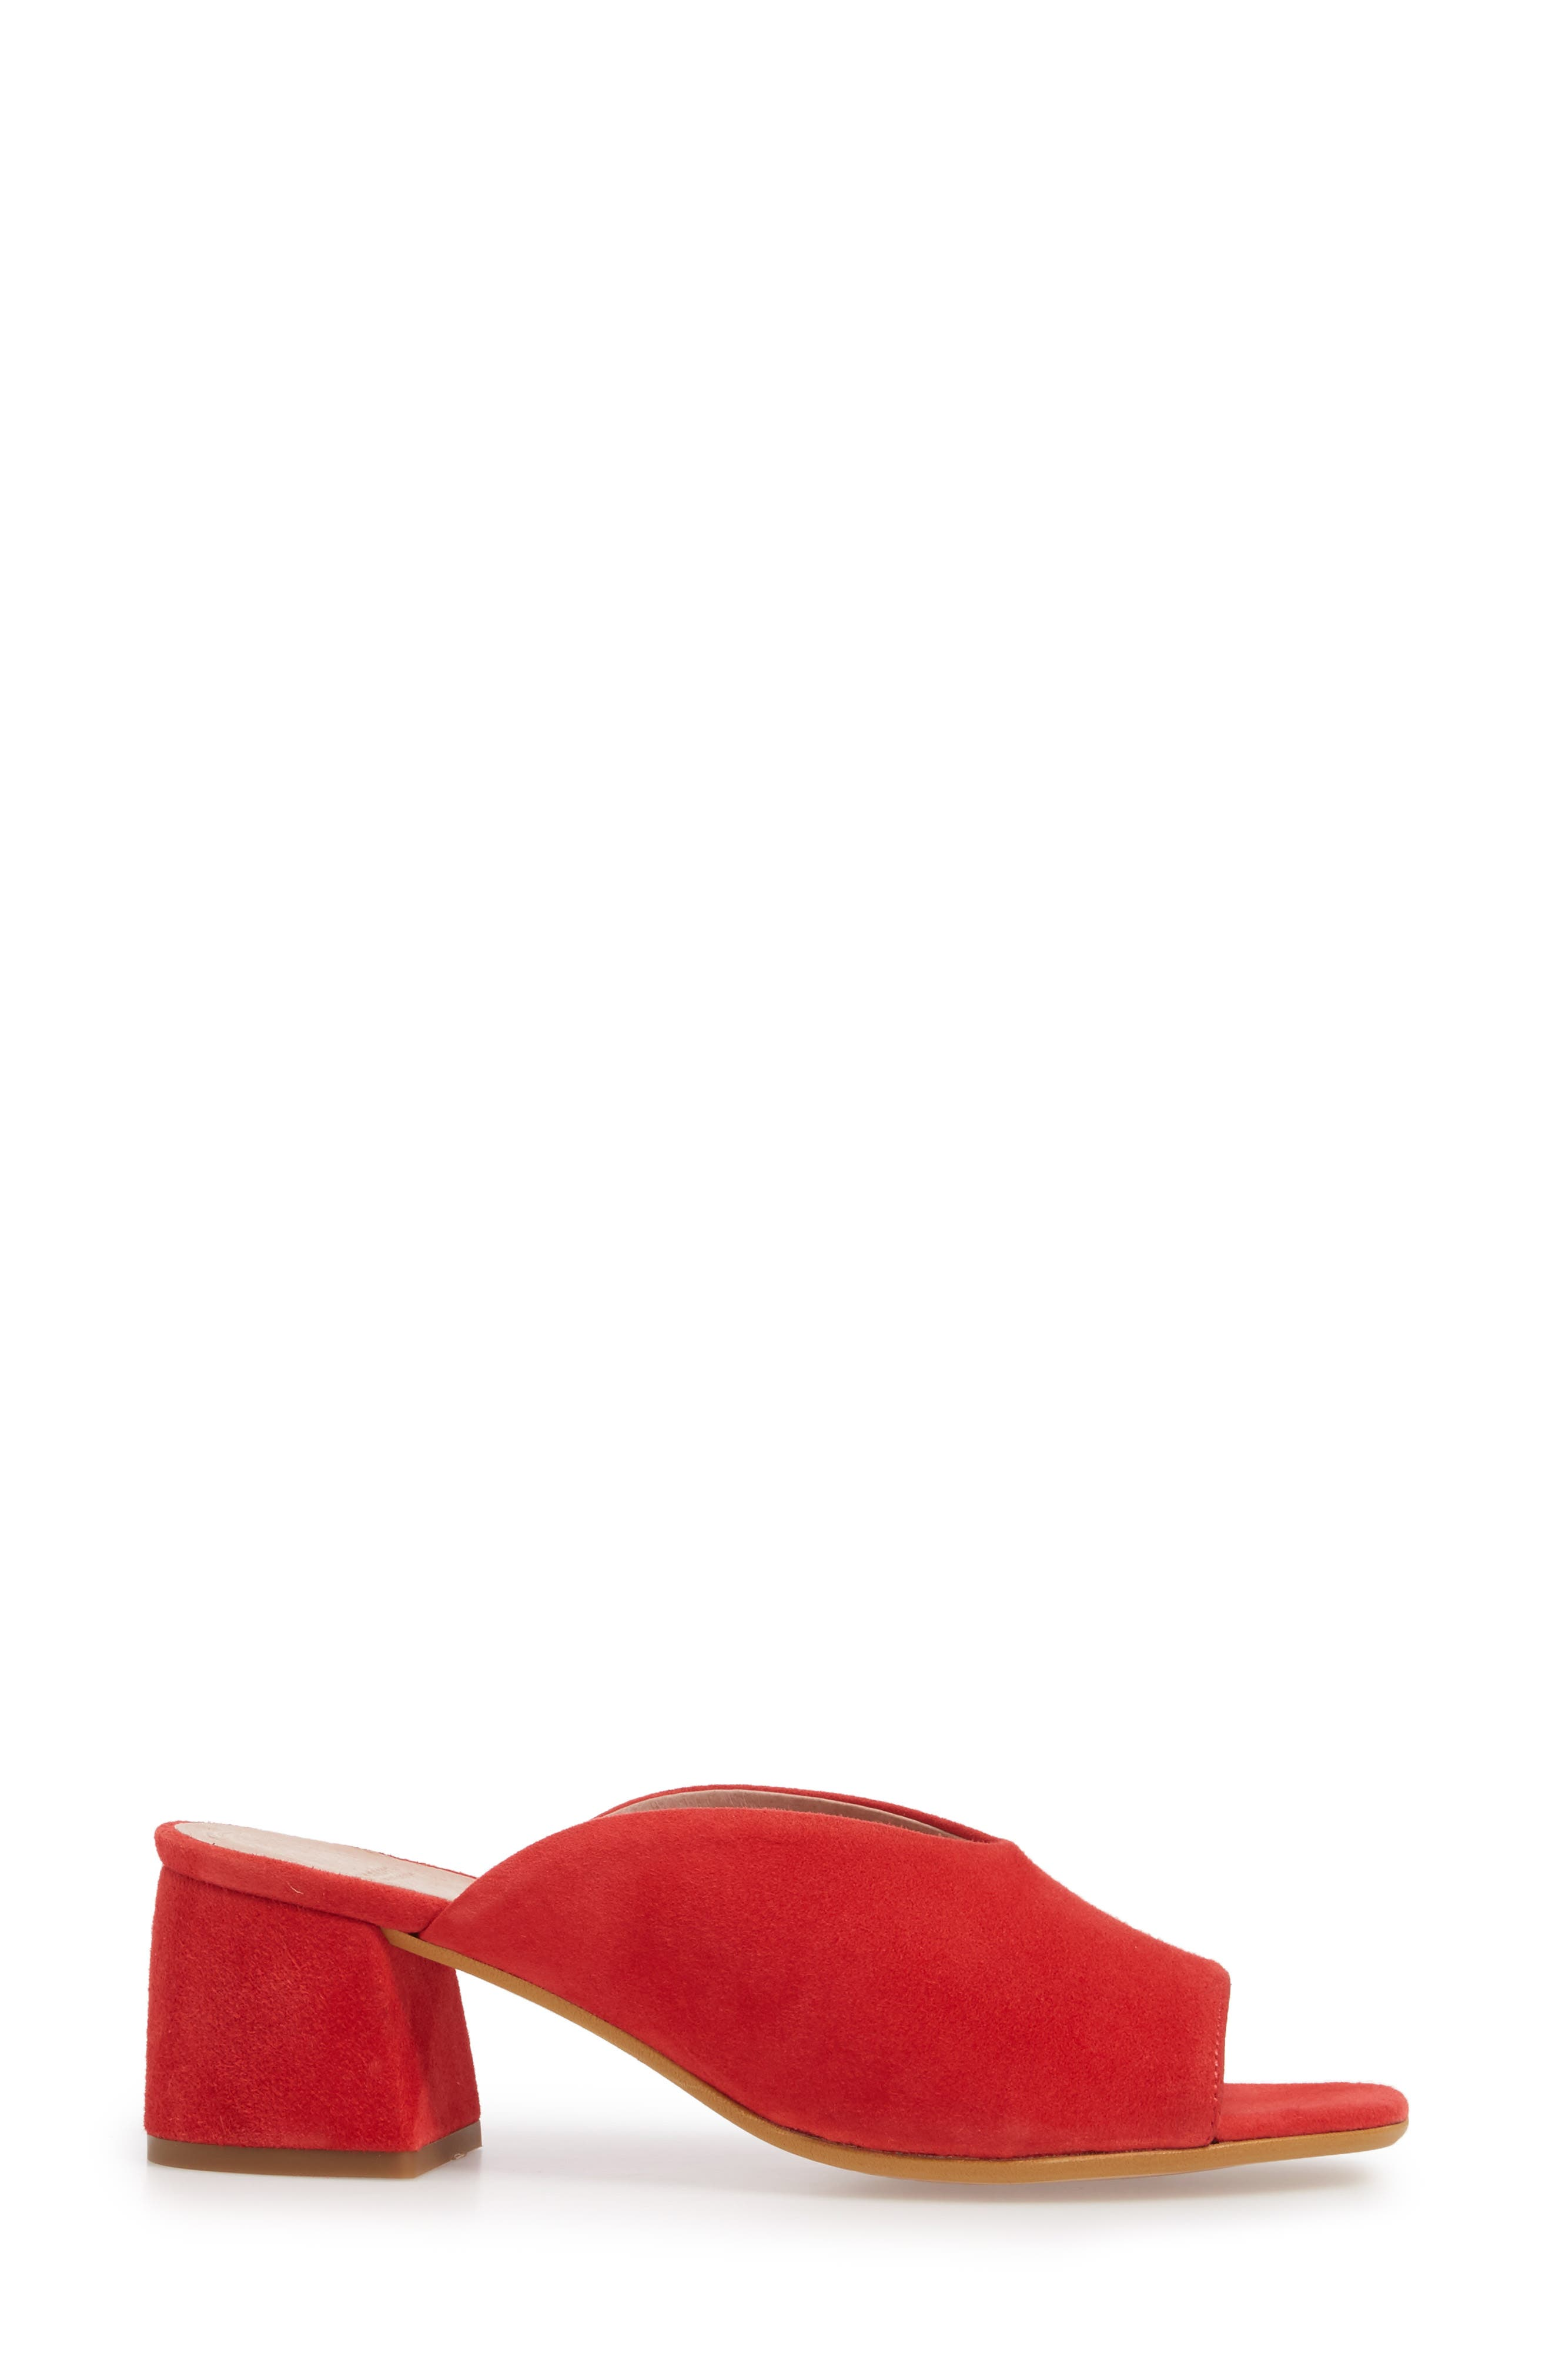 F-6127 Mule,                             Alternate thumbnail 3, color,                             Red Suede